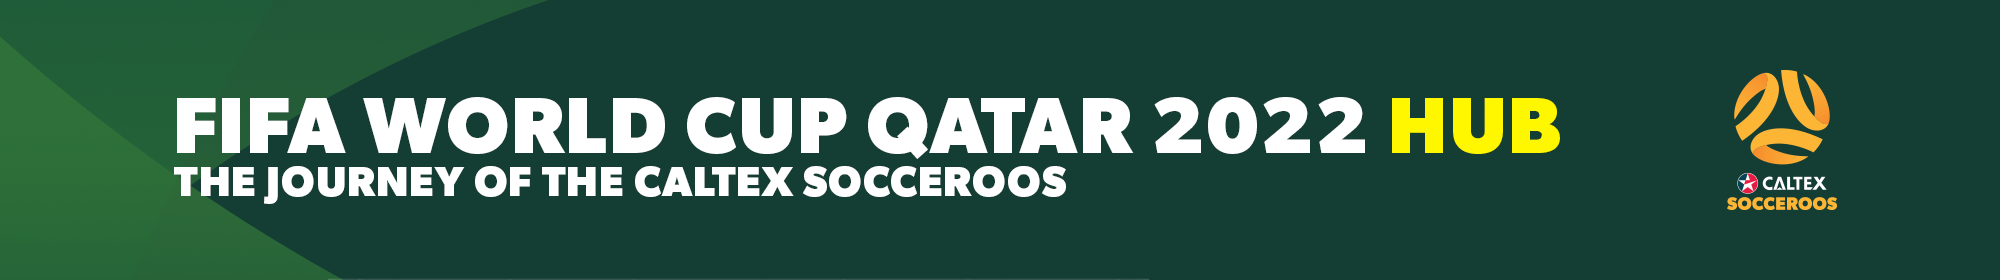 Socceroos-World-Cup-hub-header